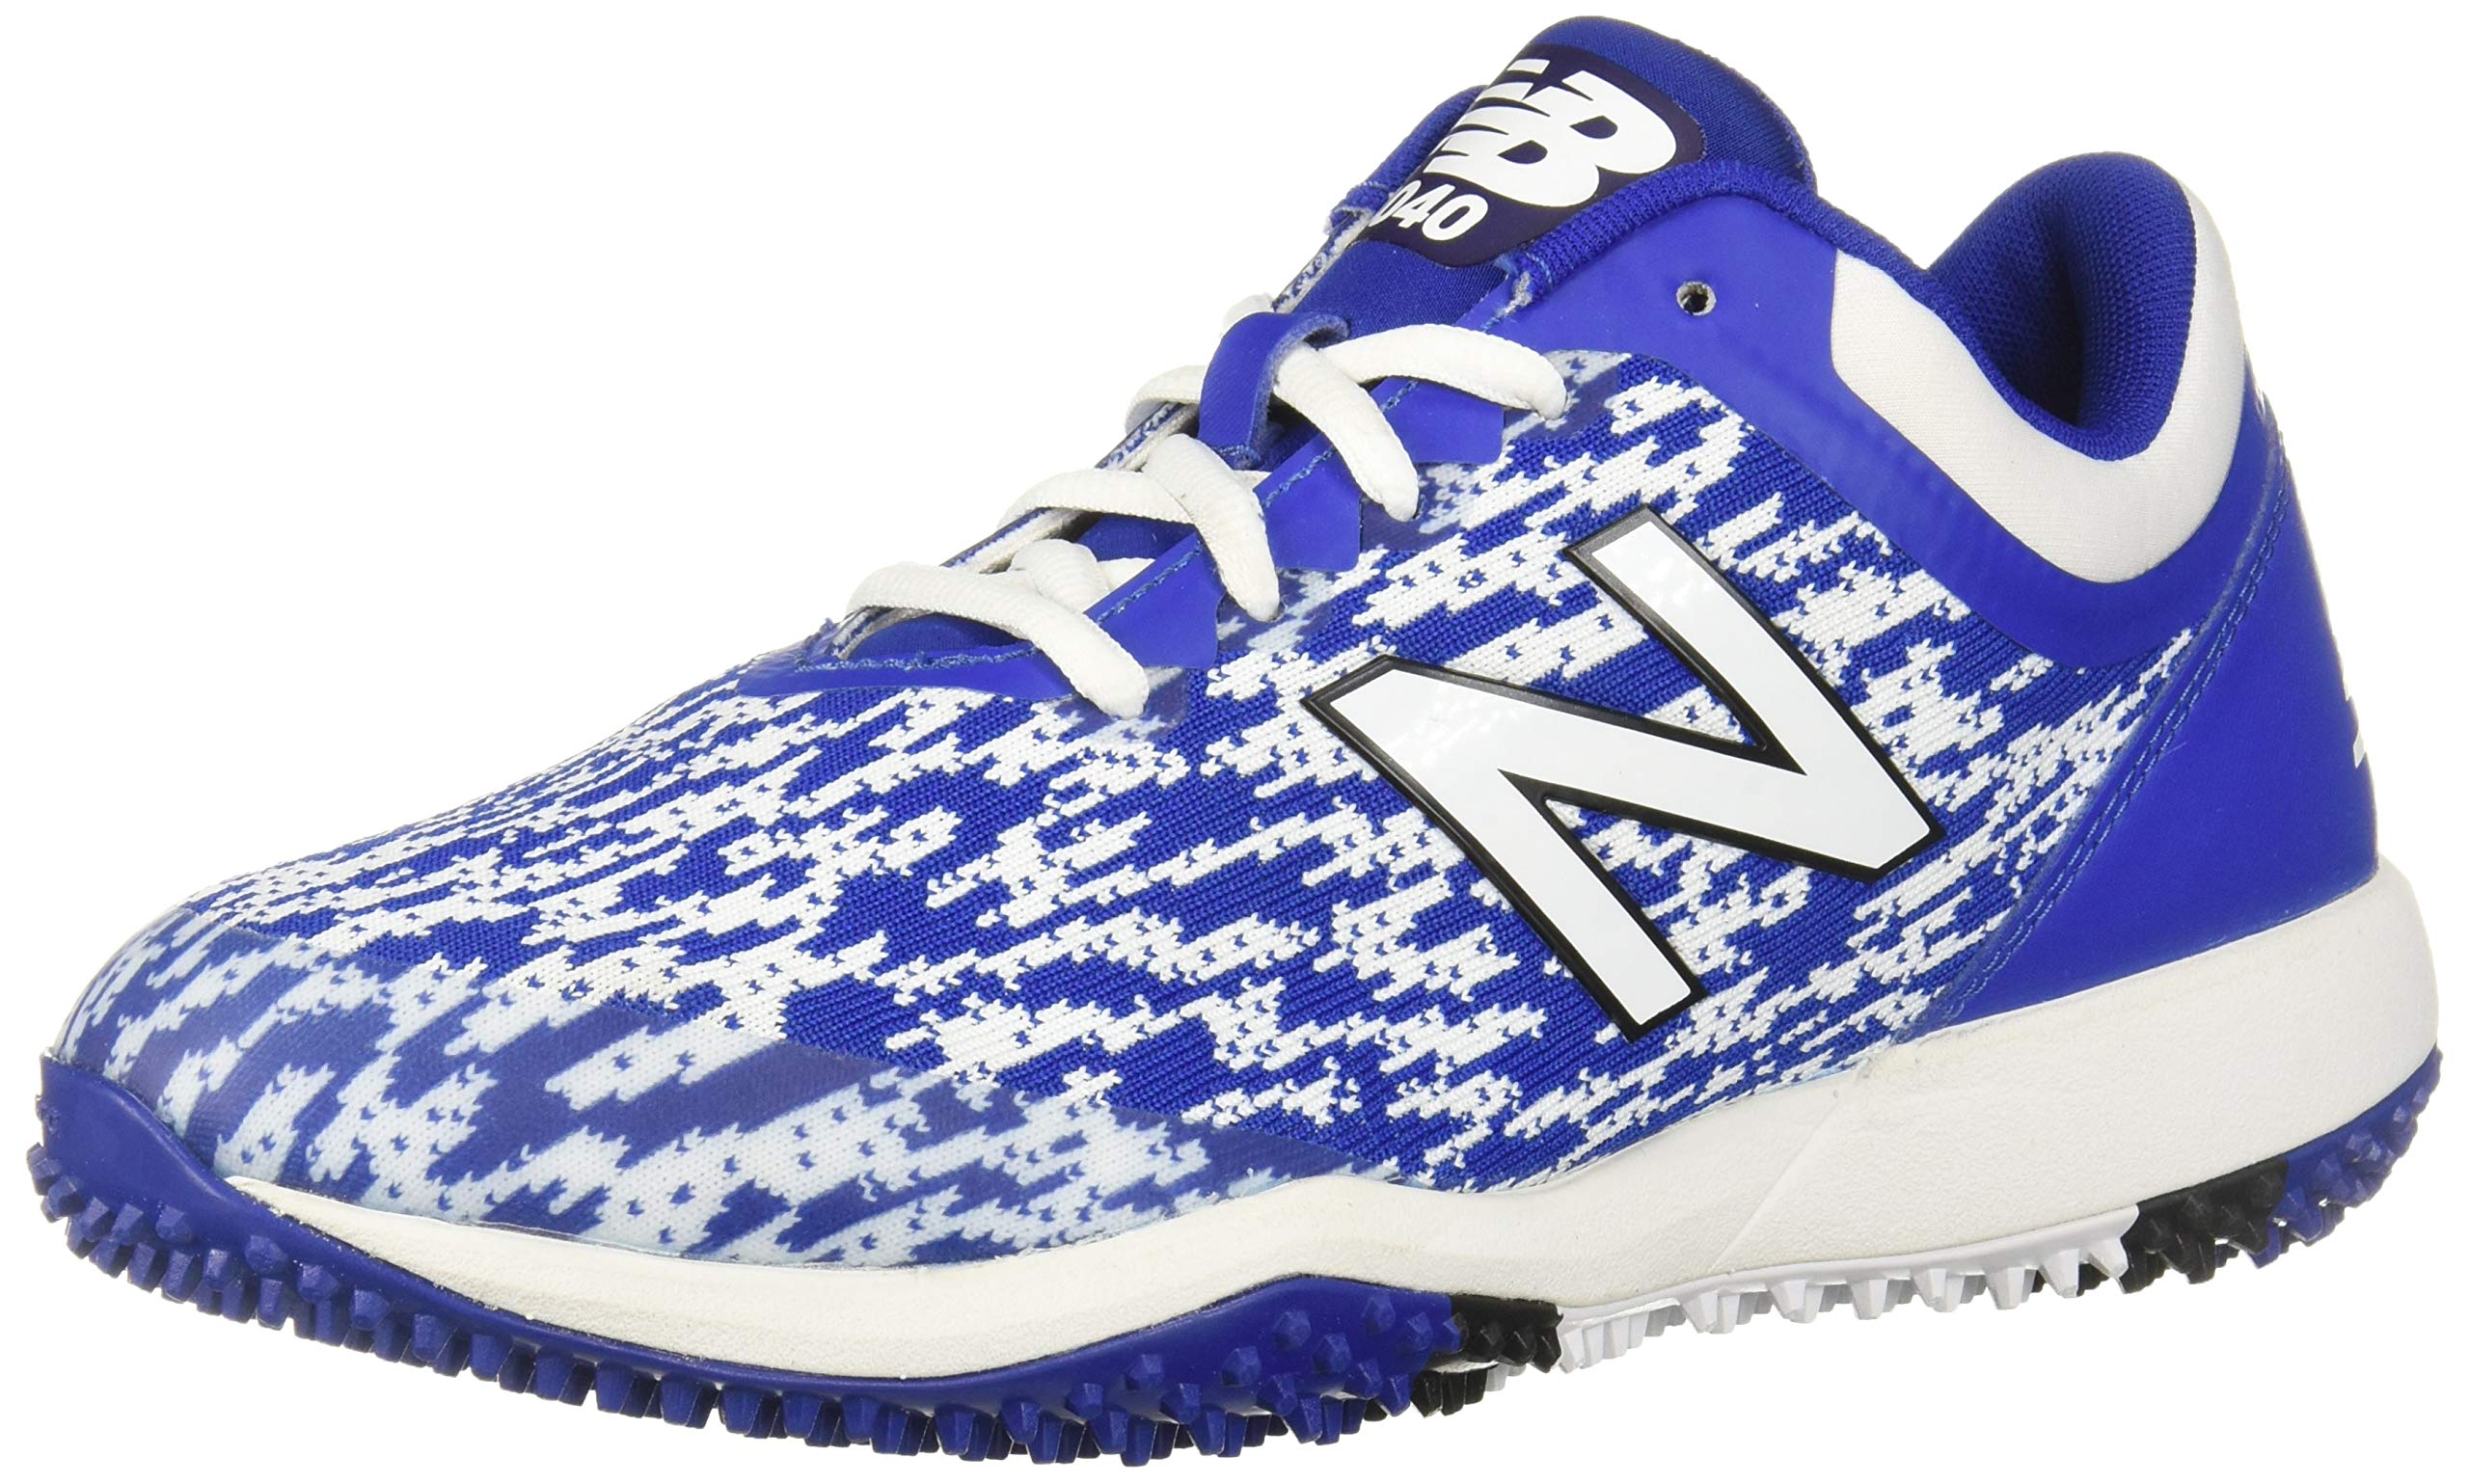 New Balance Men's 4040v5 Turf Running Shoe, Black/Royal, 5 D US